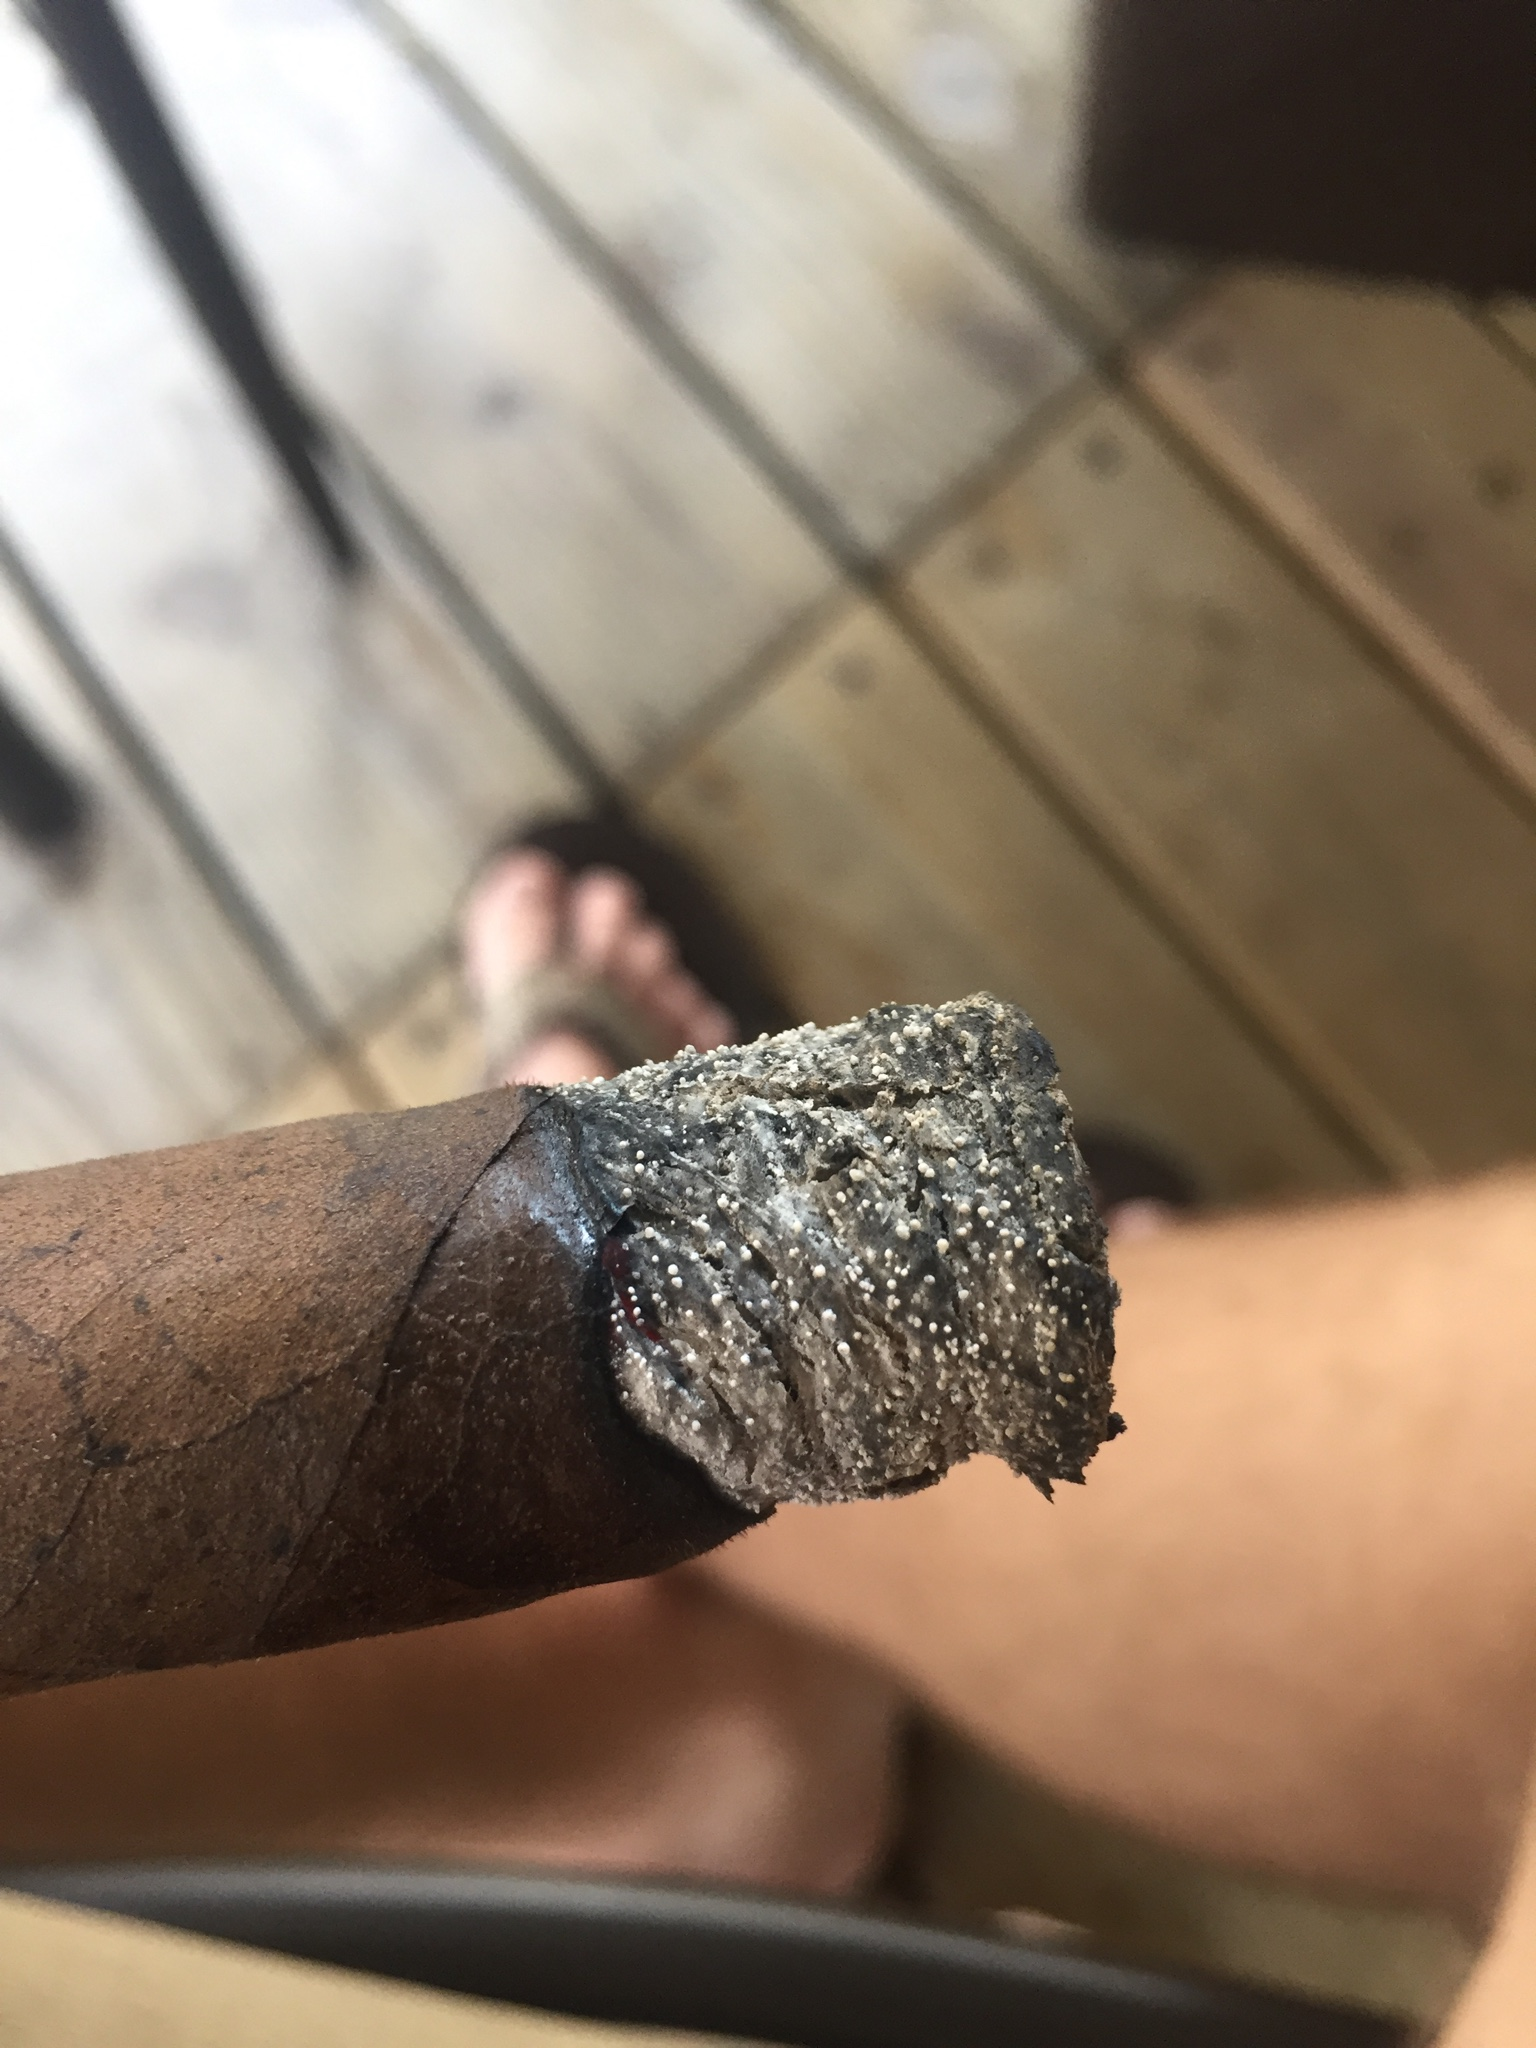 What are these little dots in the ash? - Puff Cigar